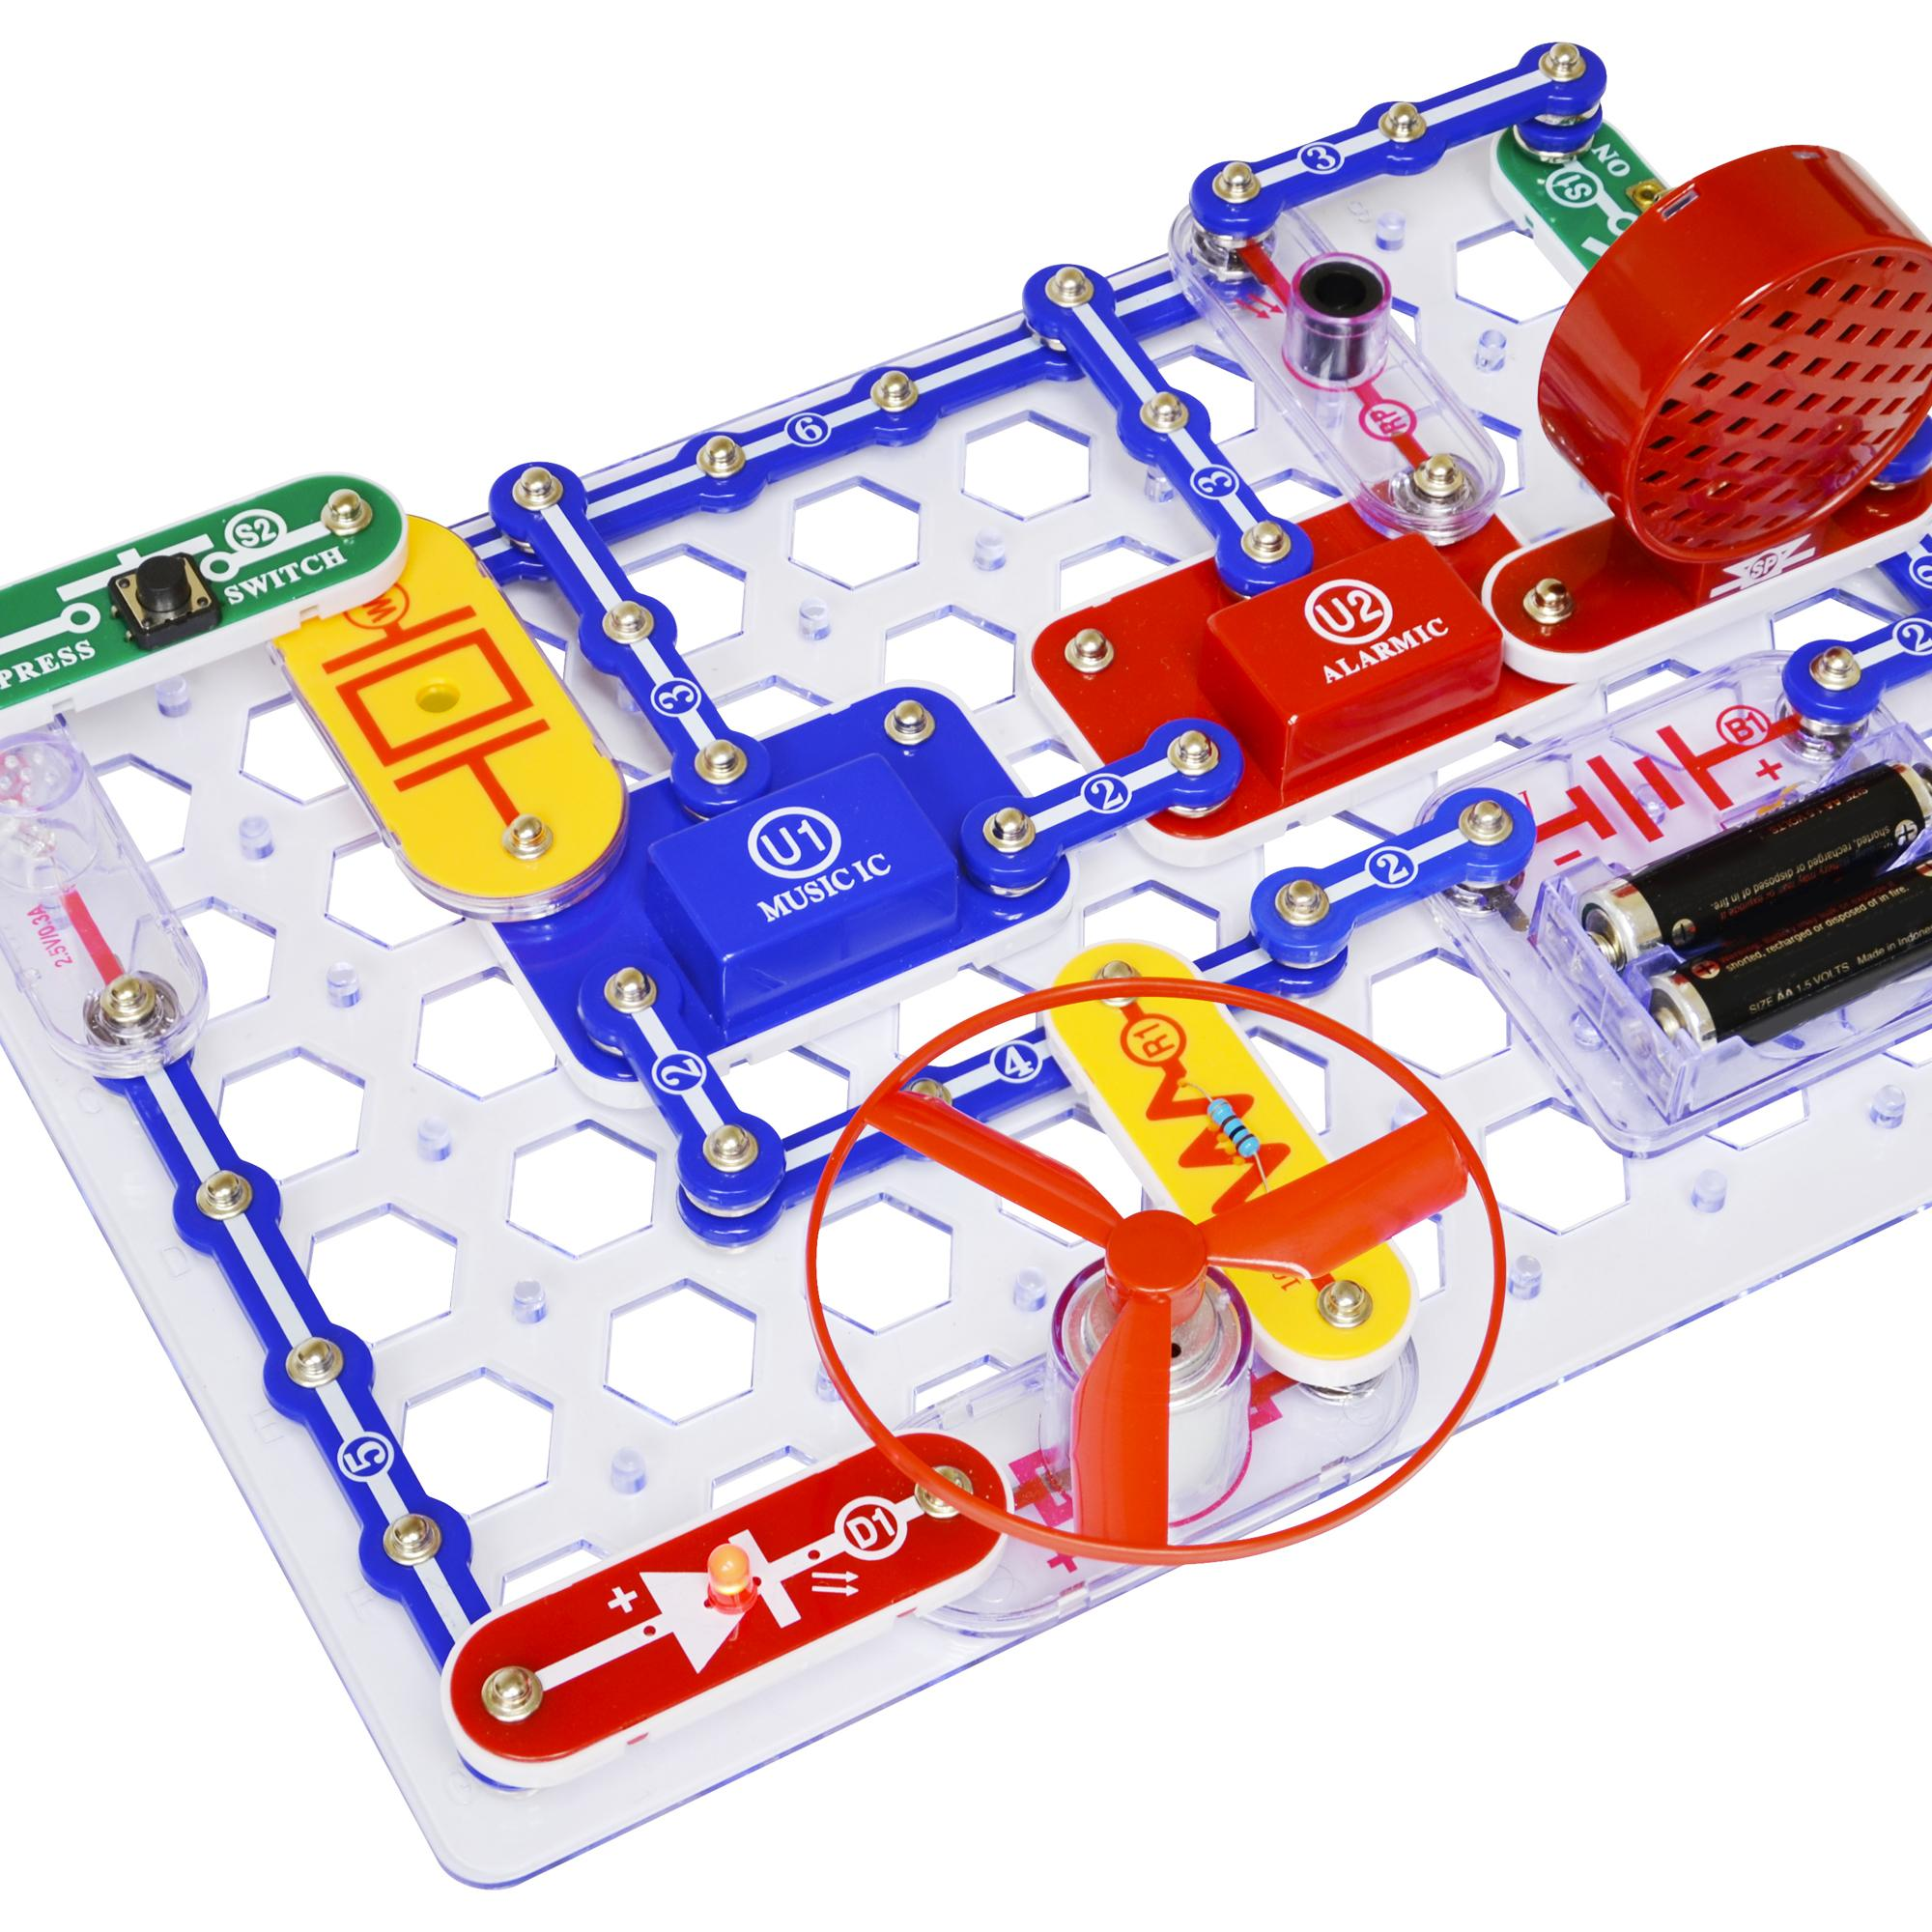 amazon com snap circuits jr sc 100 electronics discovery kit